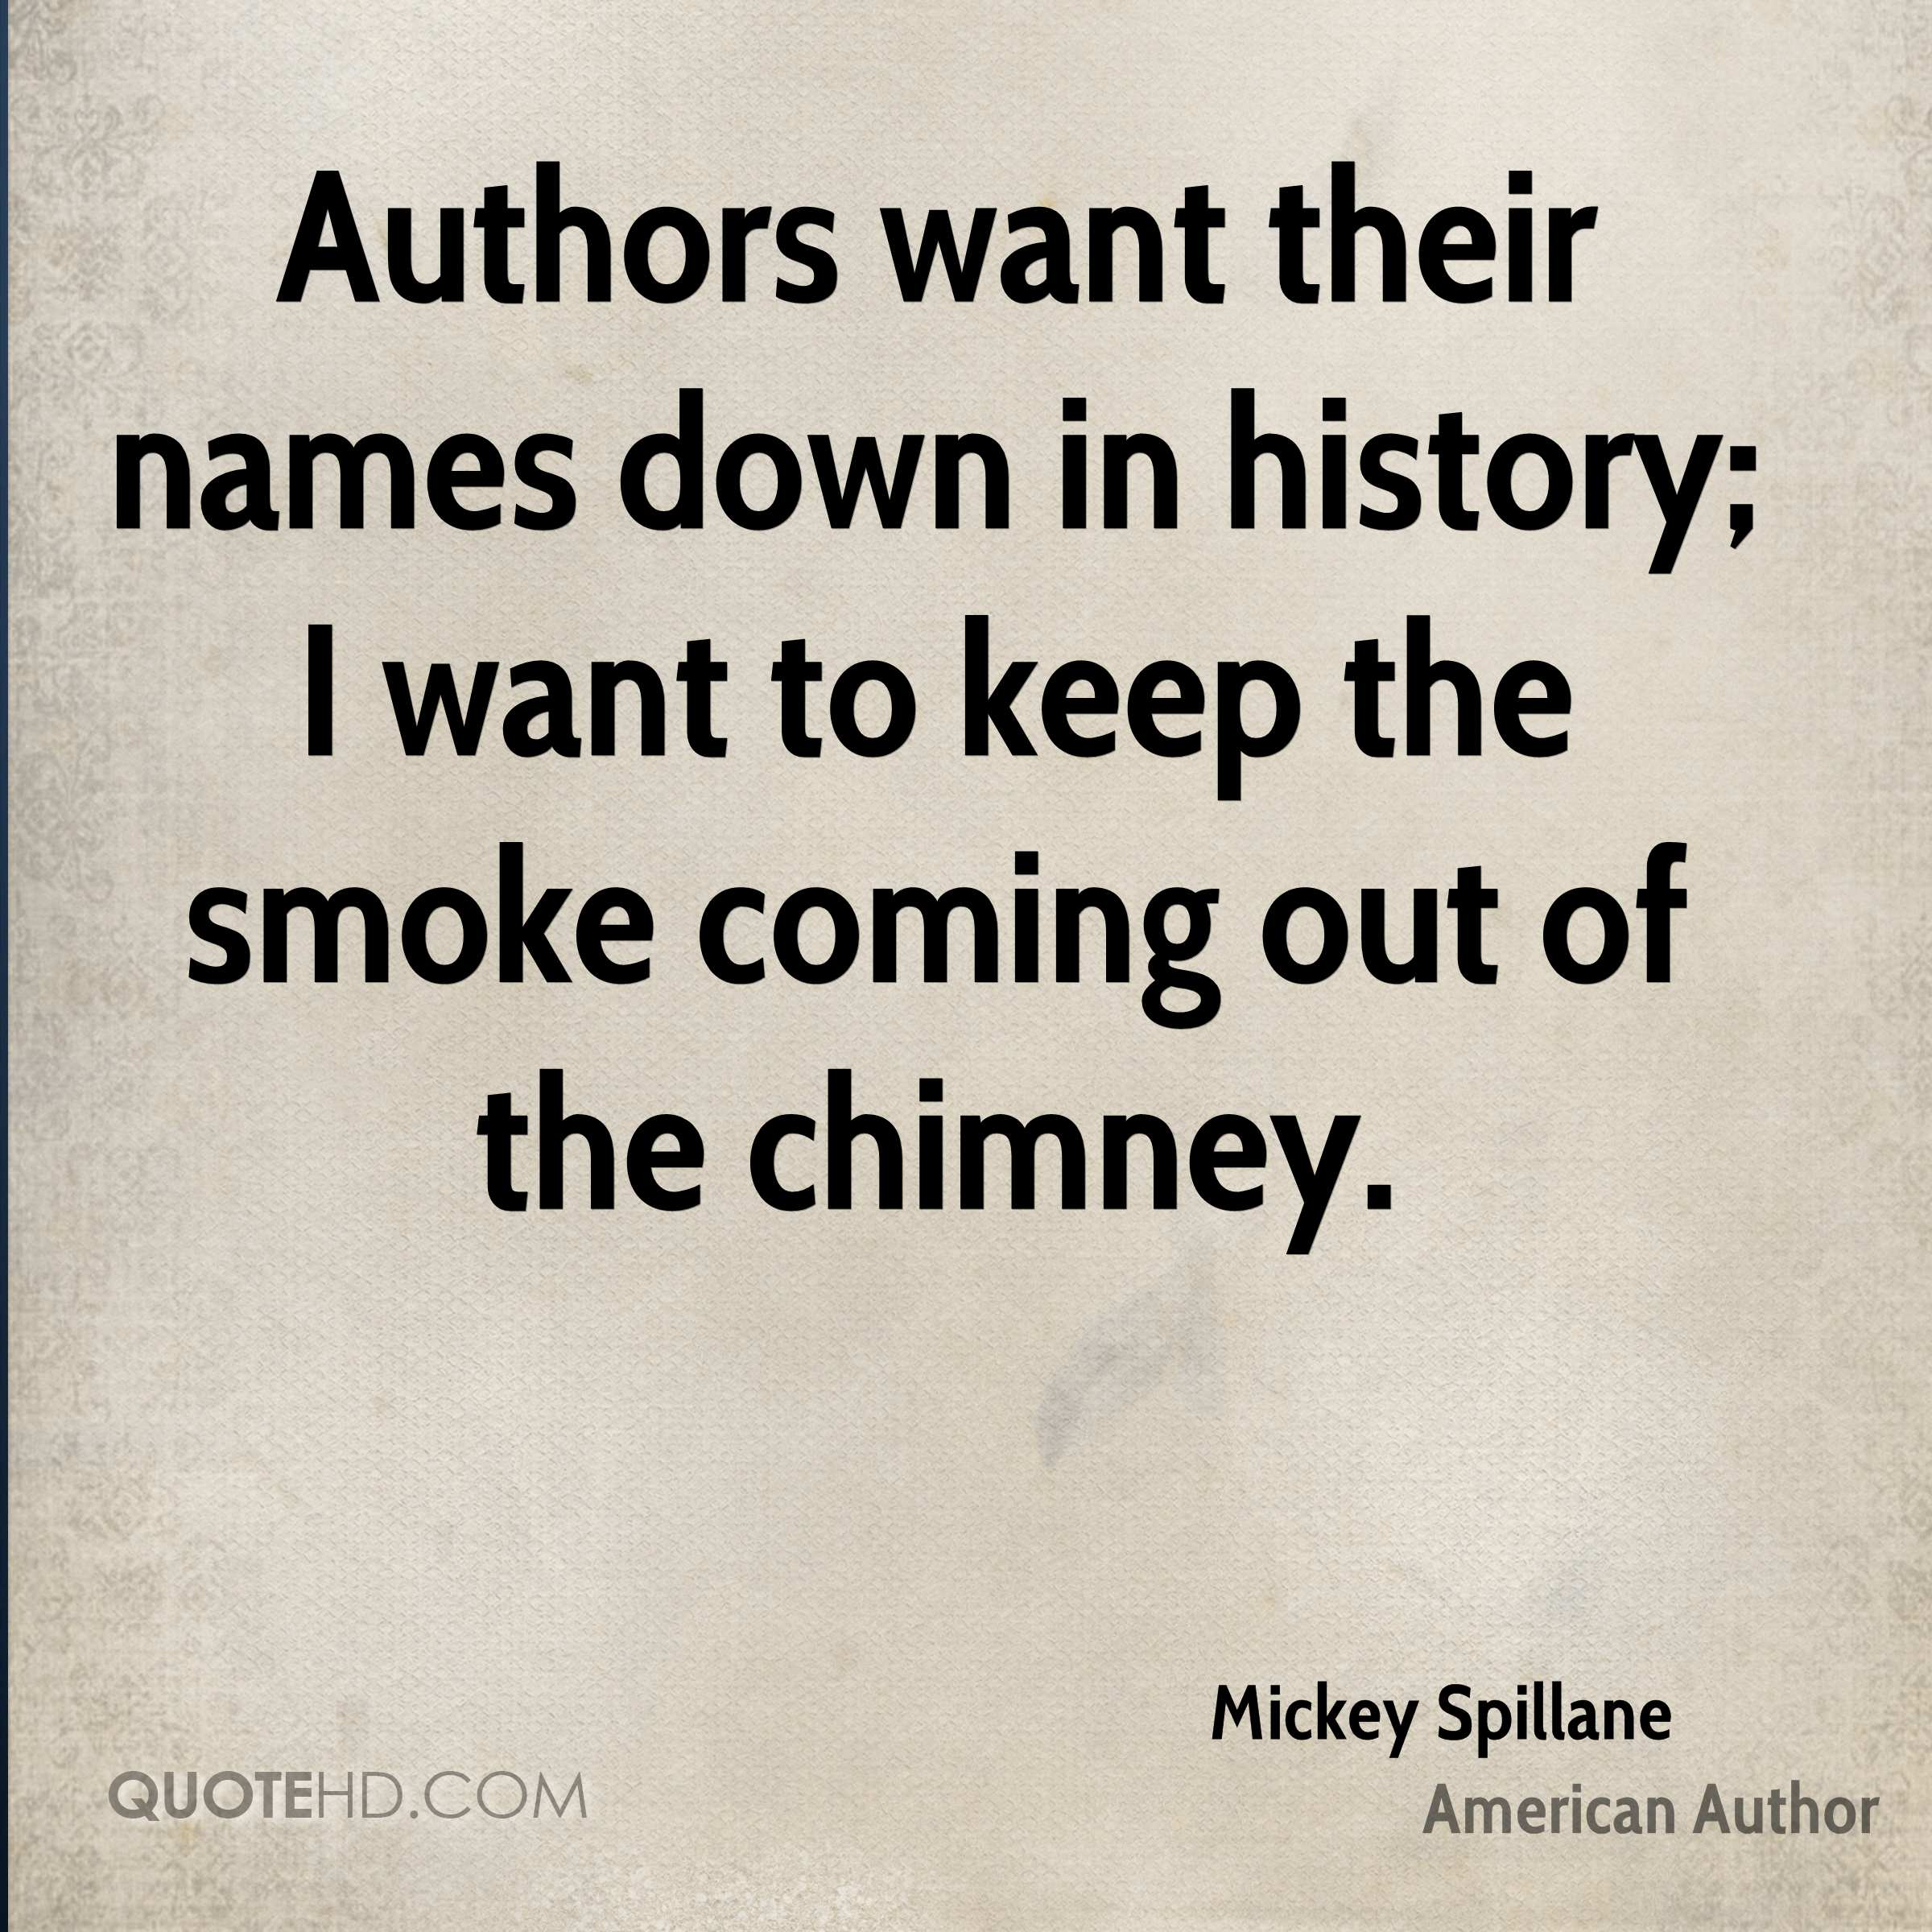 Authors want their names down in history; I want to keep the smoke coming out of the chimney.